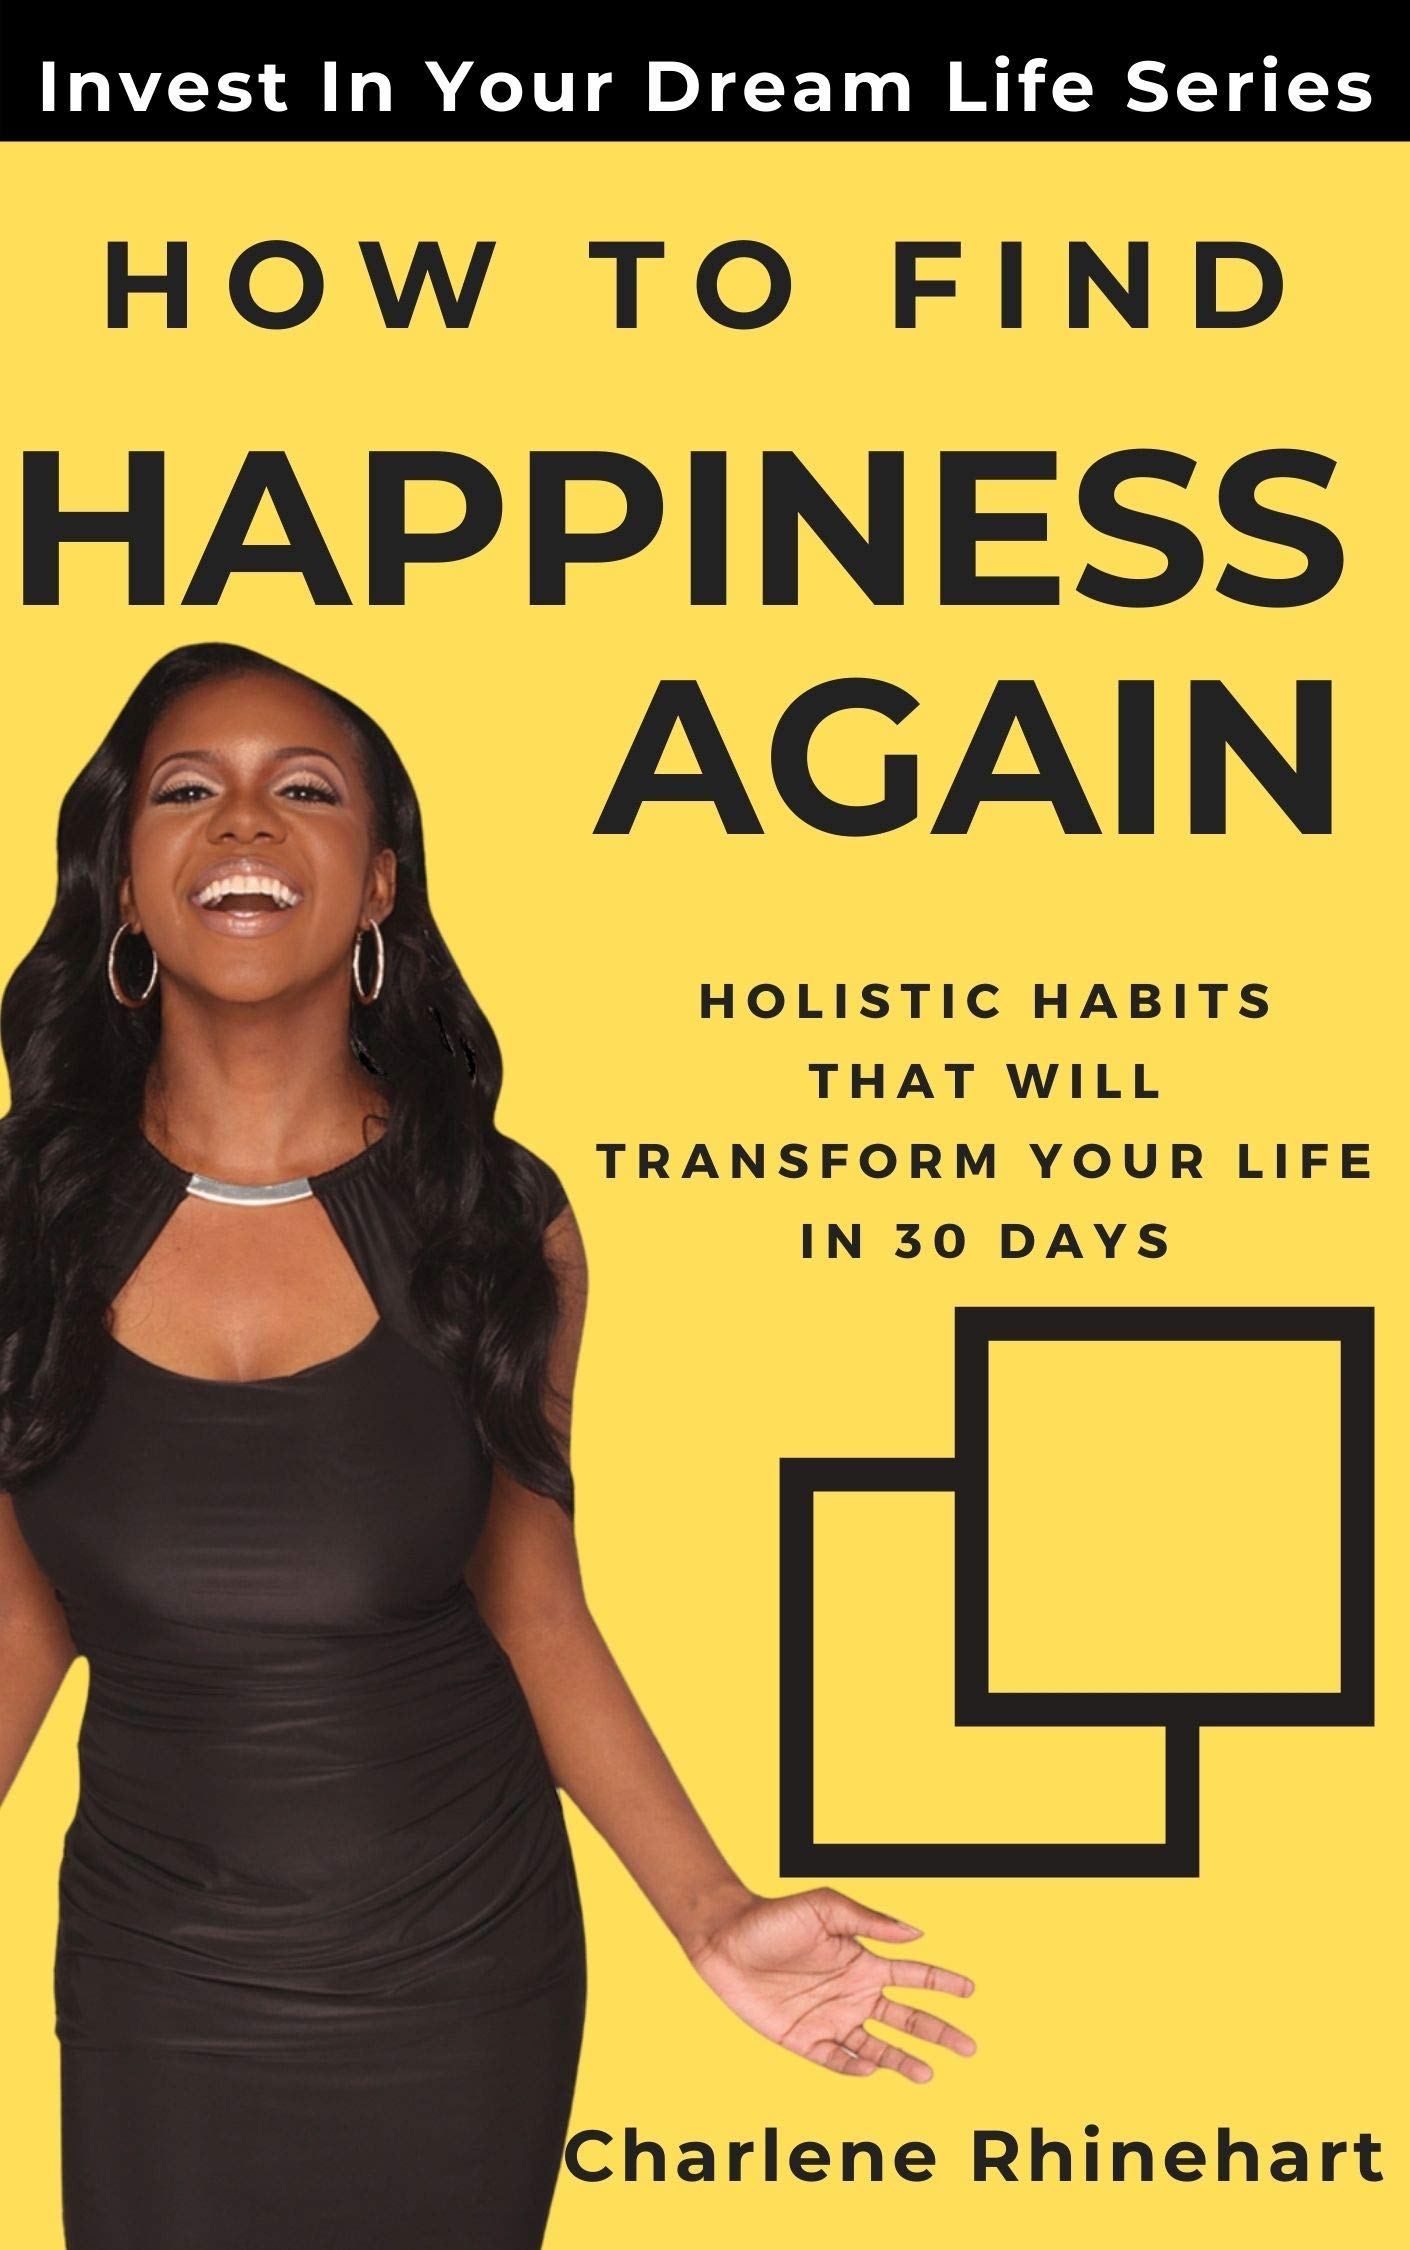 How to Find Happiness Again : Holistic Habits That Will Transform Your Life in 30 Days (Self Care Edition) (Invest In Your Dream Life)